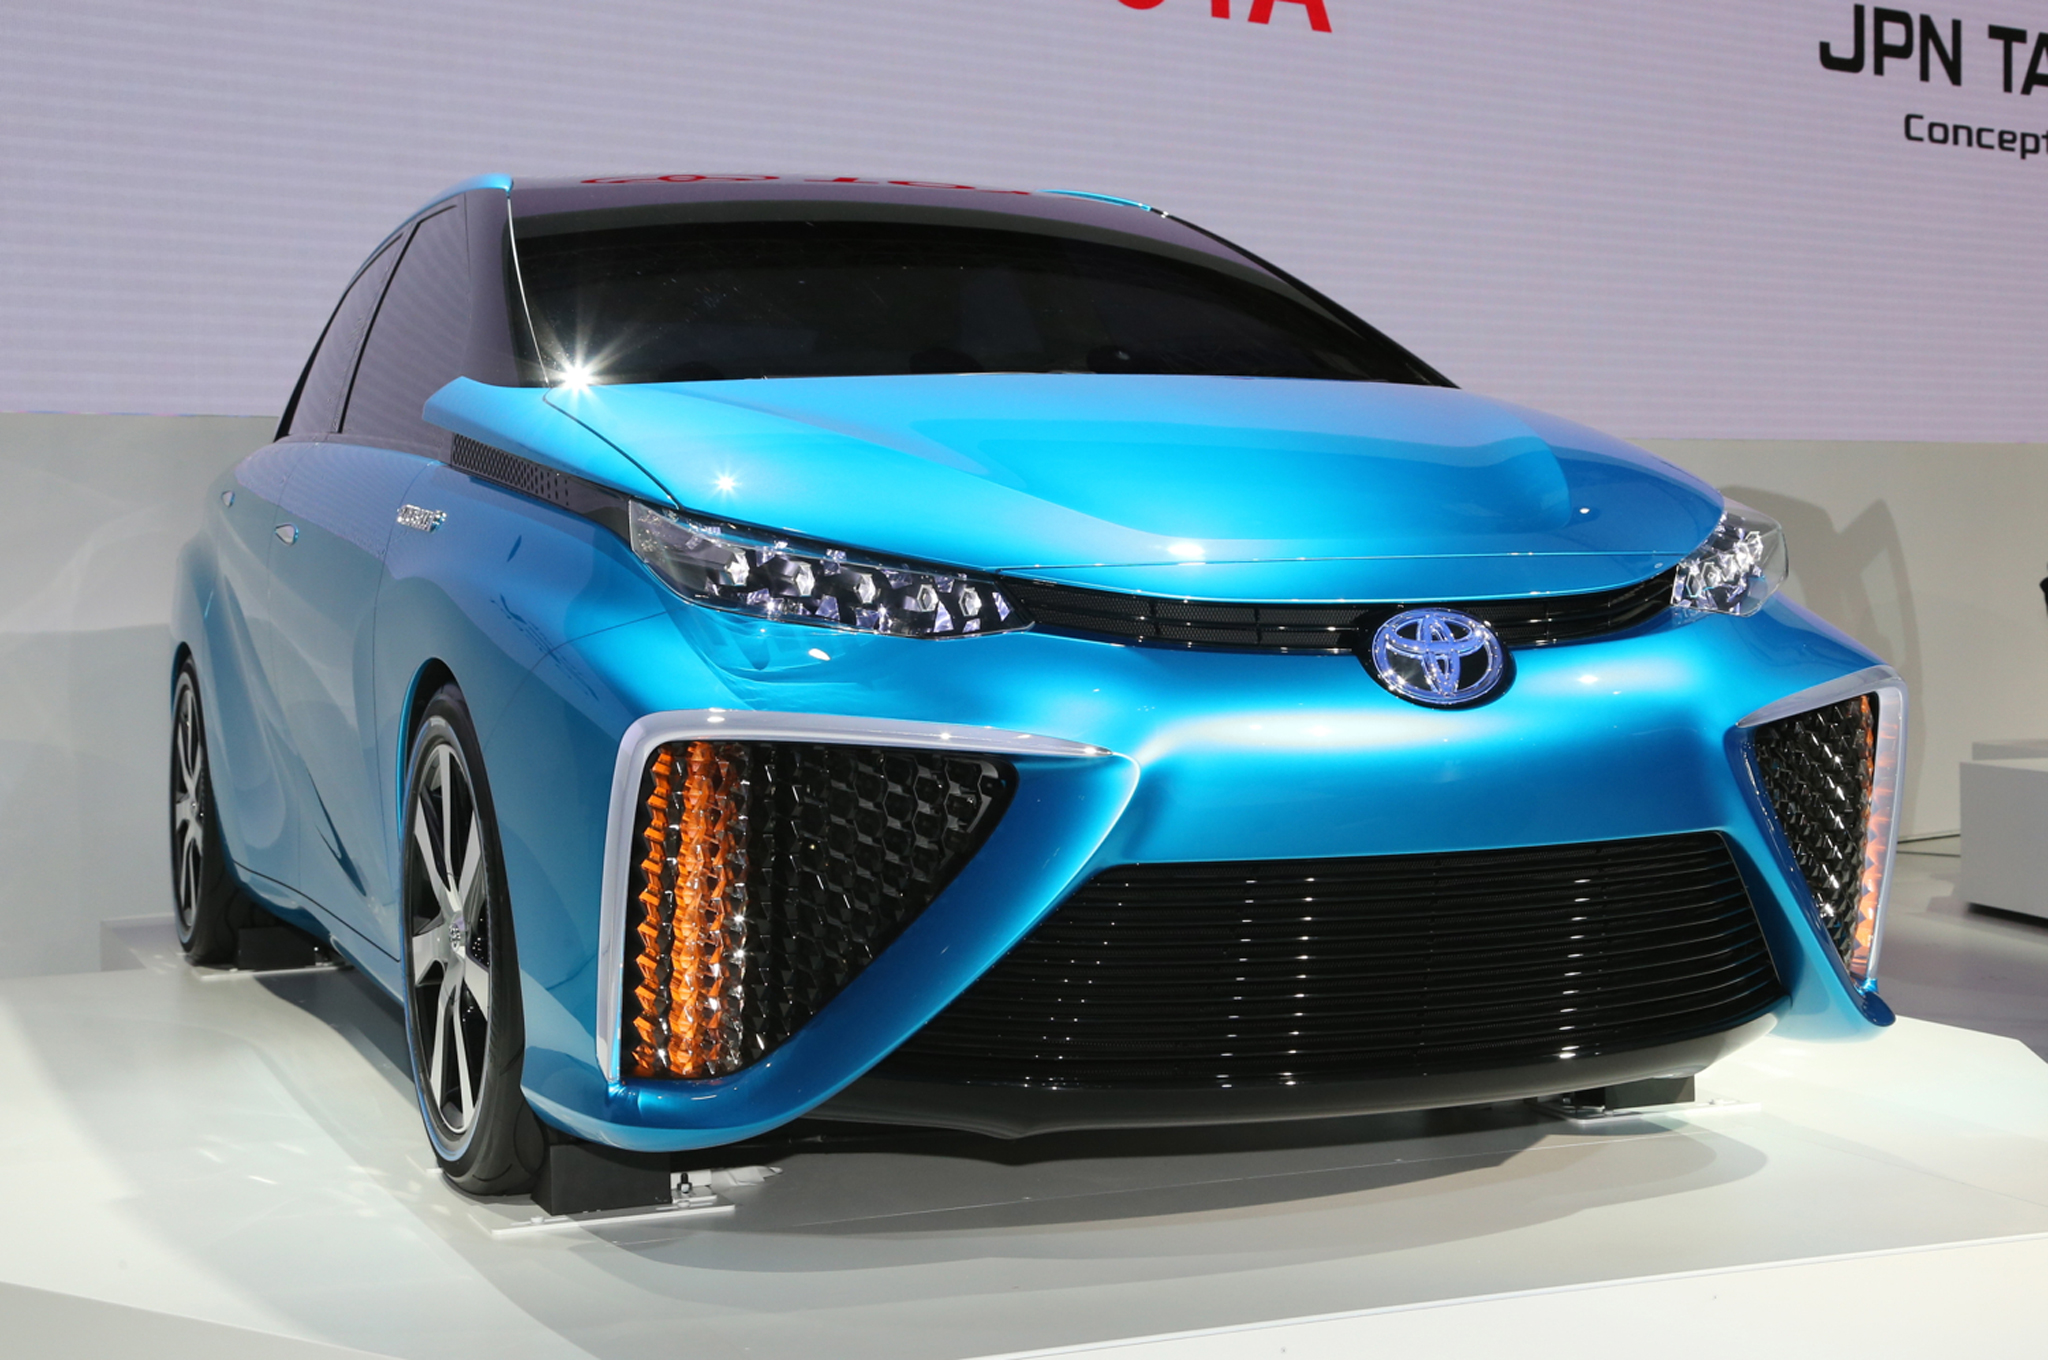 Toyota Delivers First Ever Hydrogen Powered Car